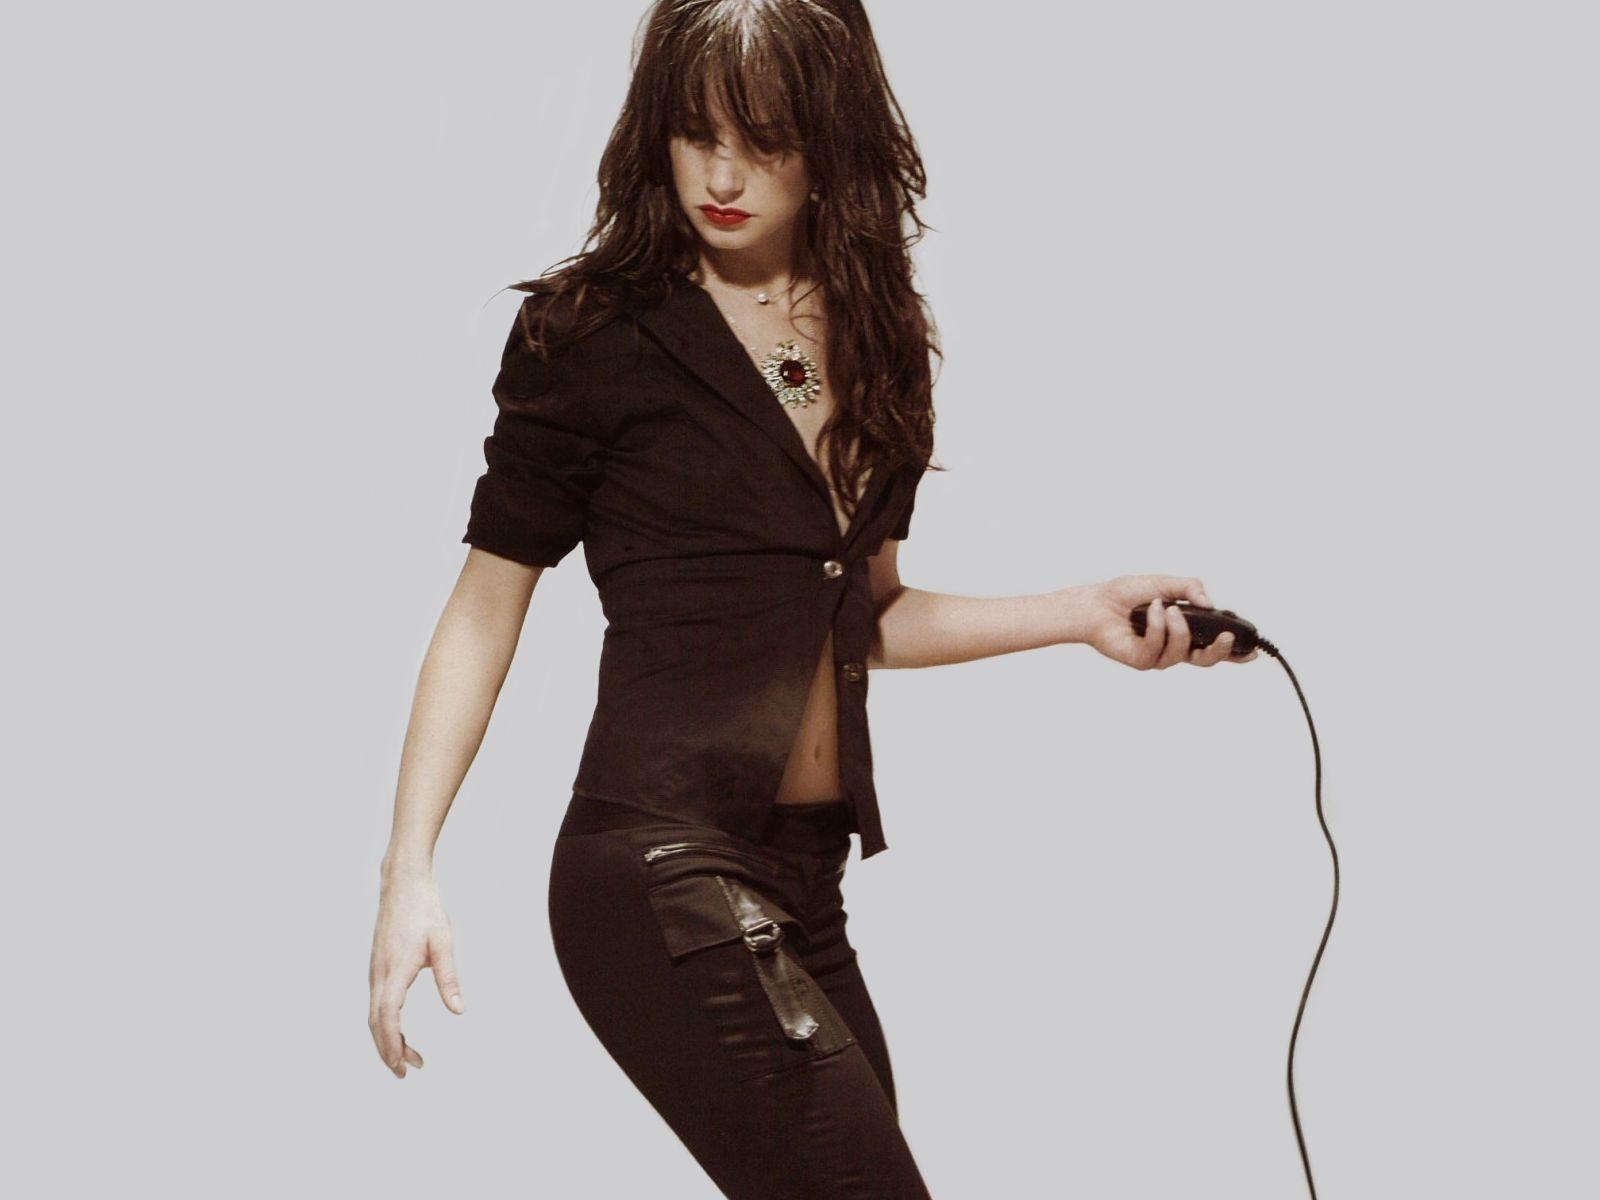 Juliette Lewis image Juliette Lewis HD wallpapers and backgrounds